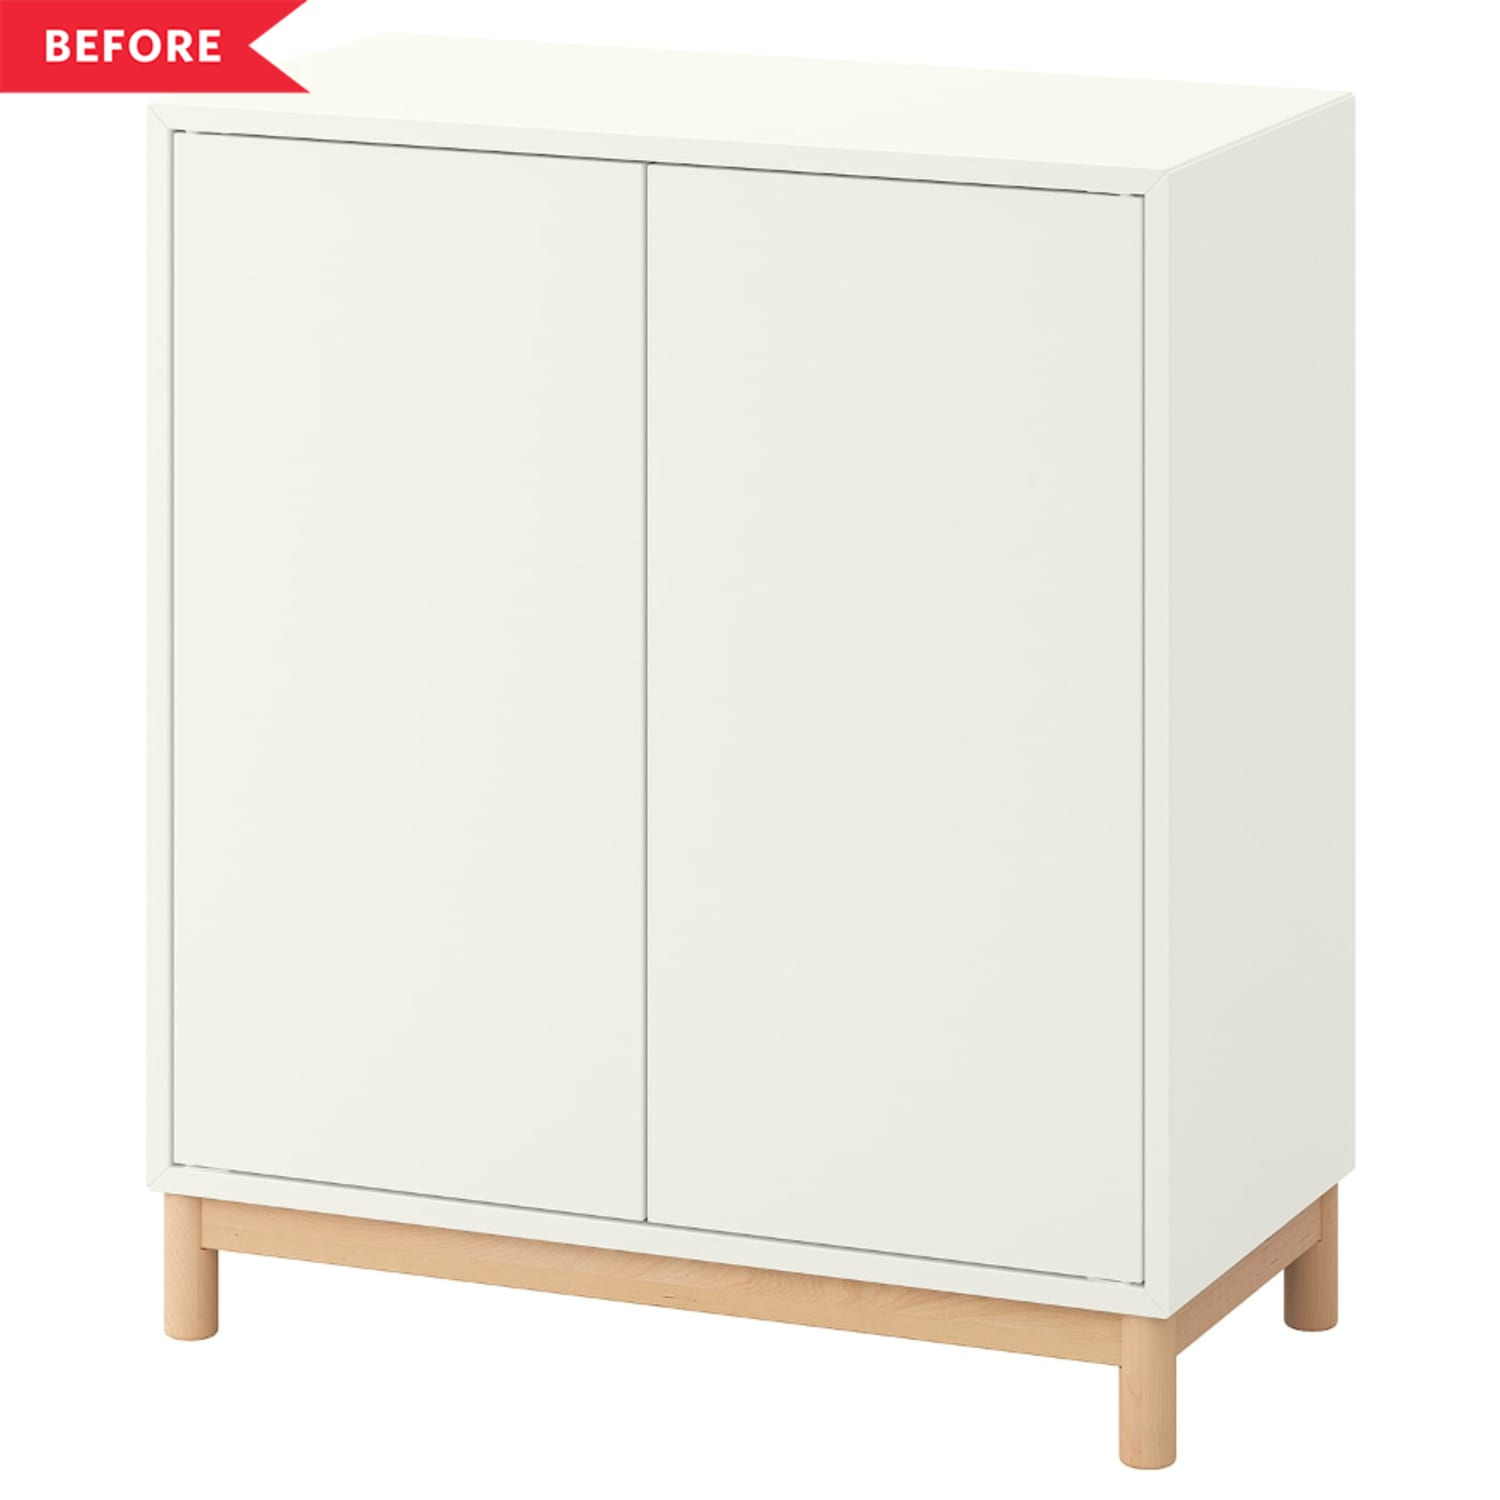 Before & After: A Dollar Store Item Turns This Plain IKEA Cabinet into a Piece of Art